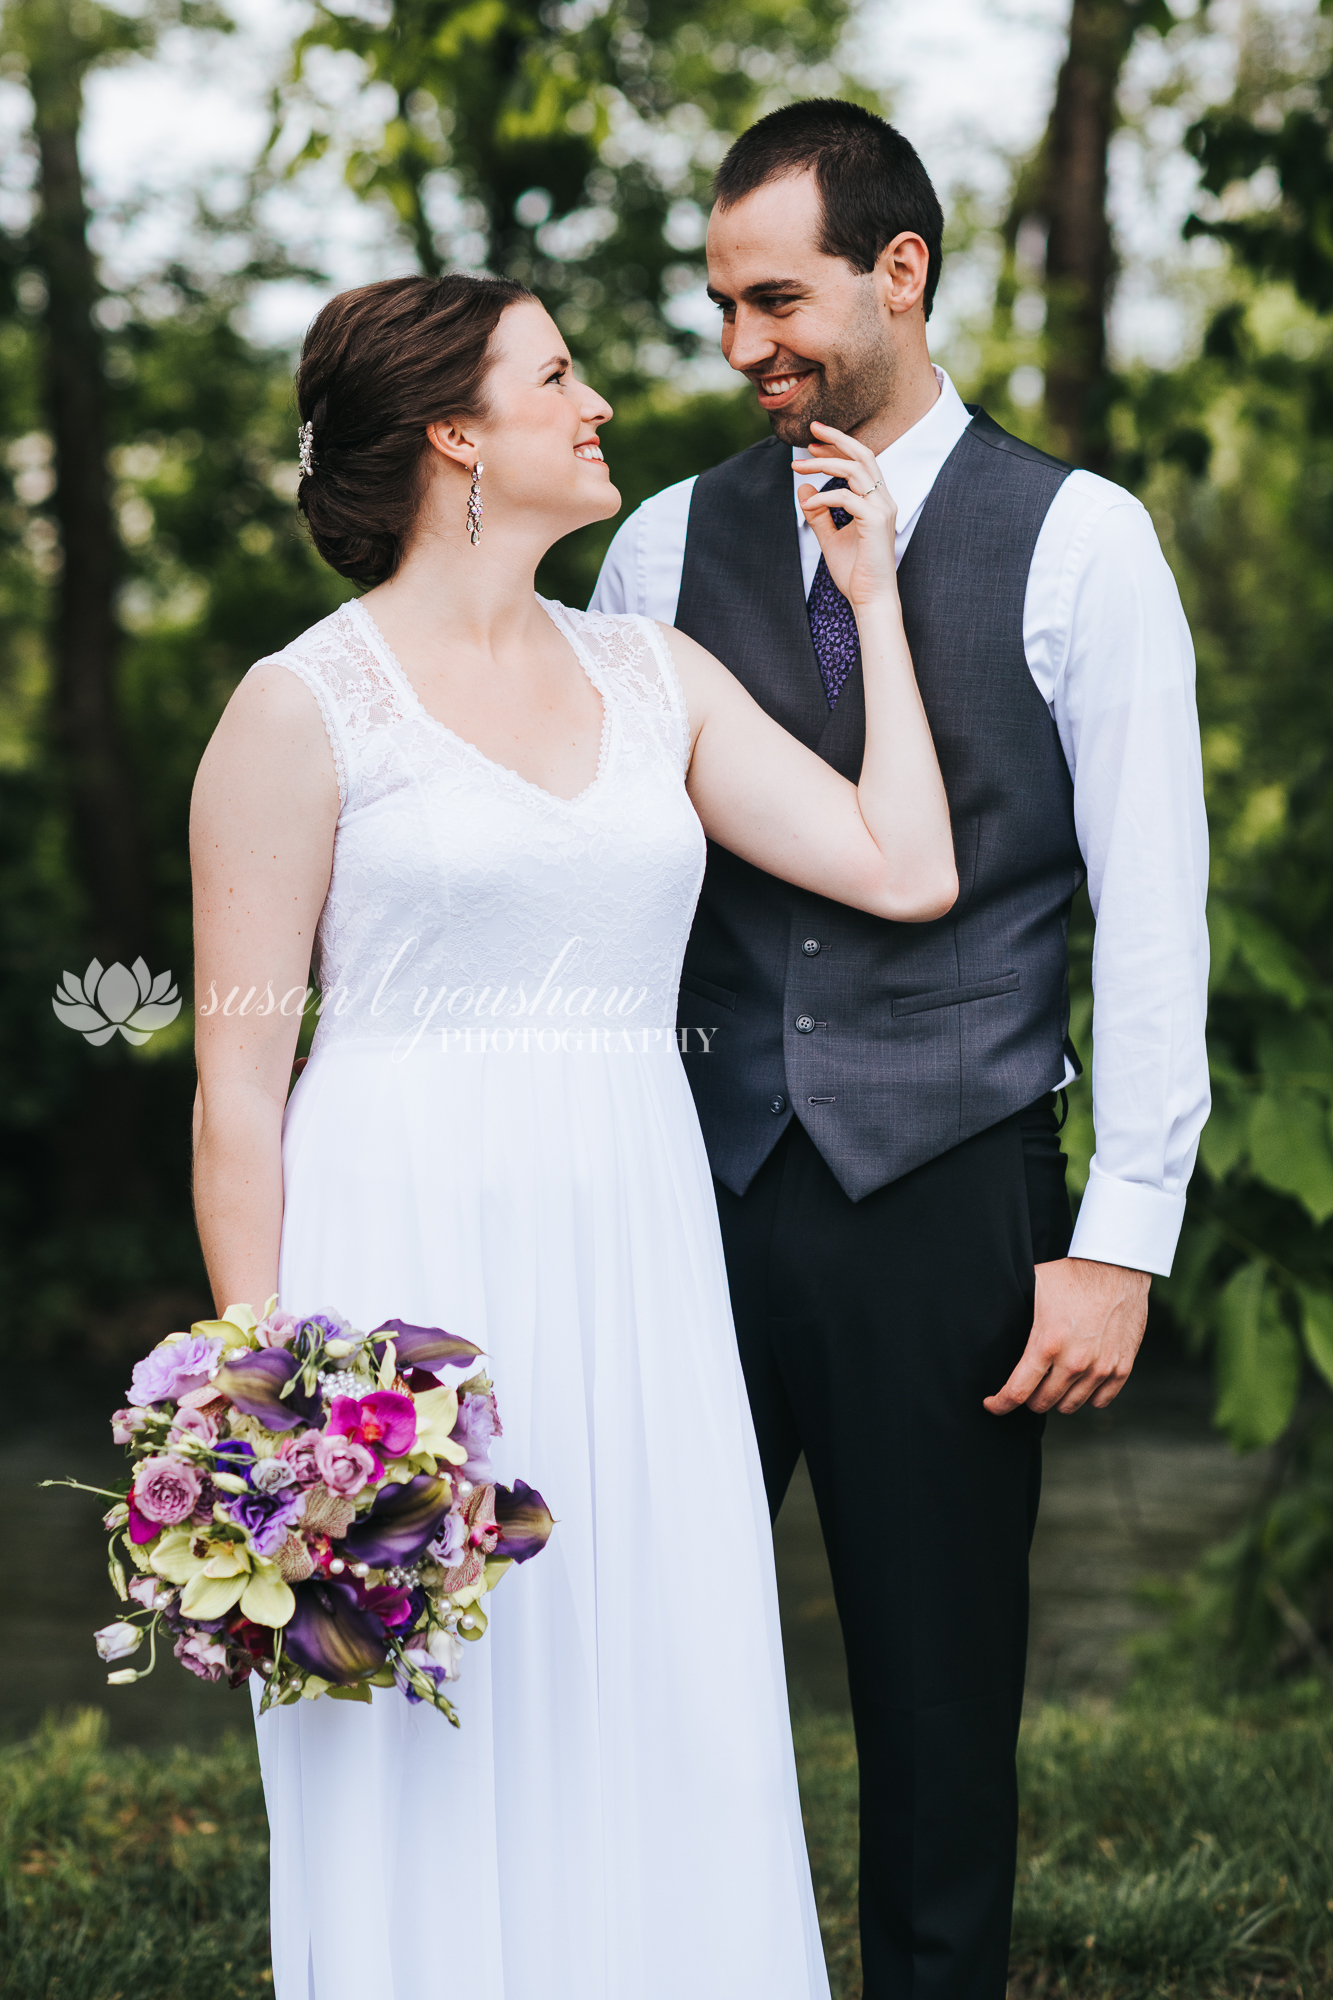 Adena and  Erik Wedding 05-17-2019 SLY Photography-36.jpg